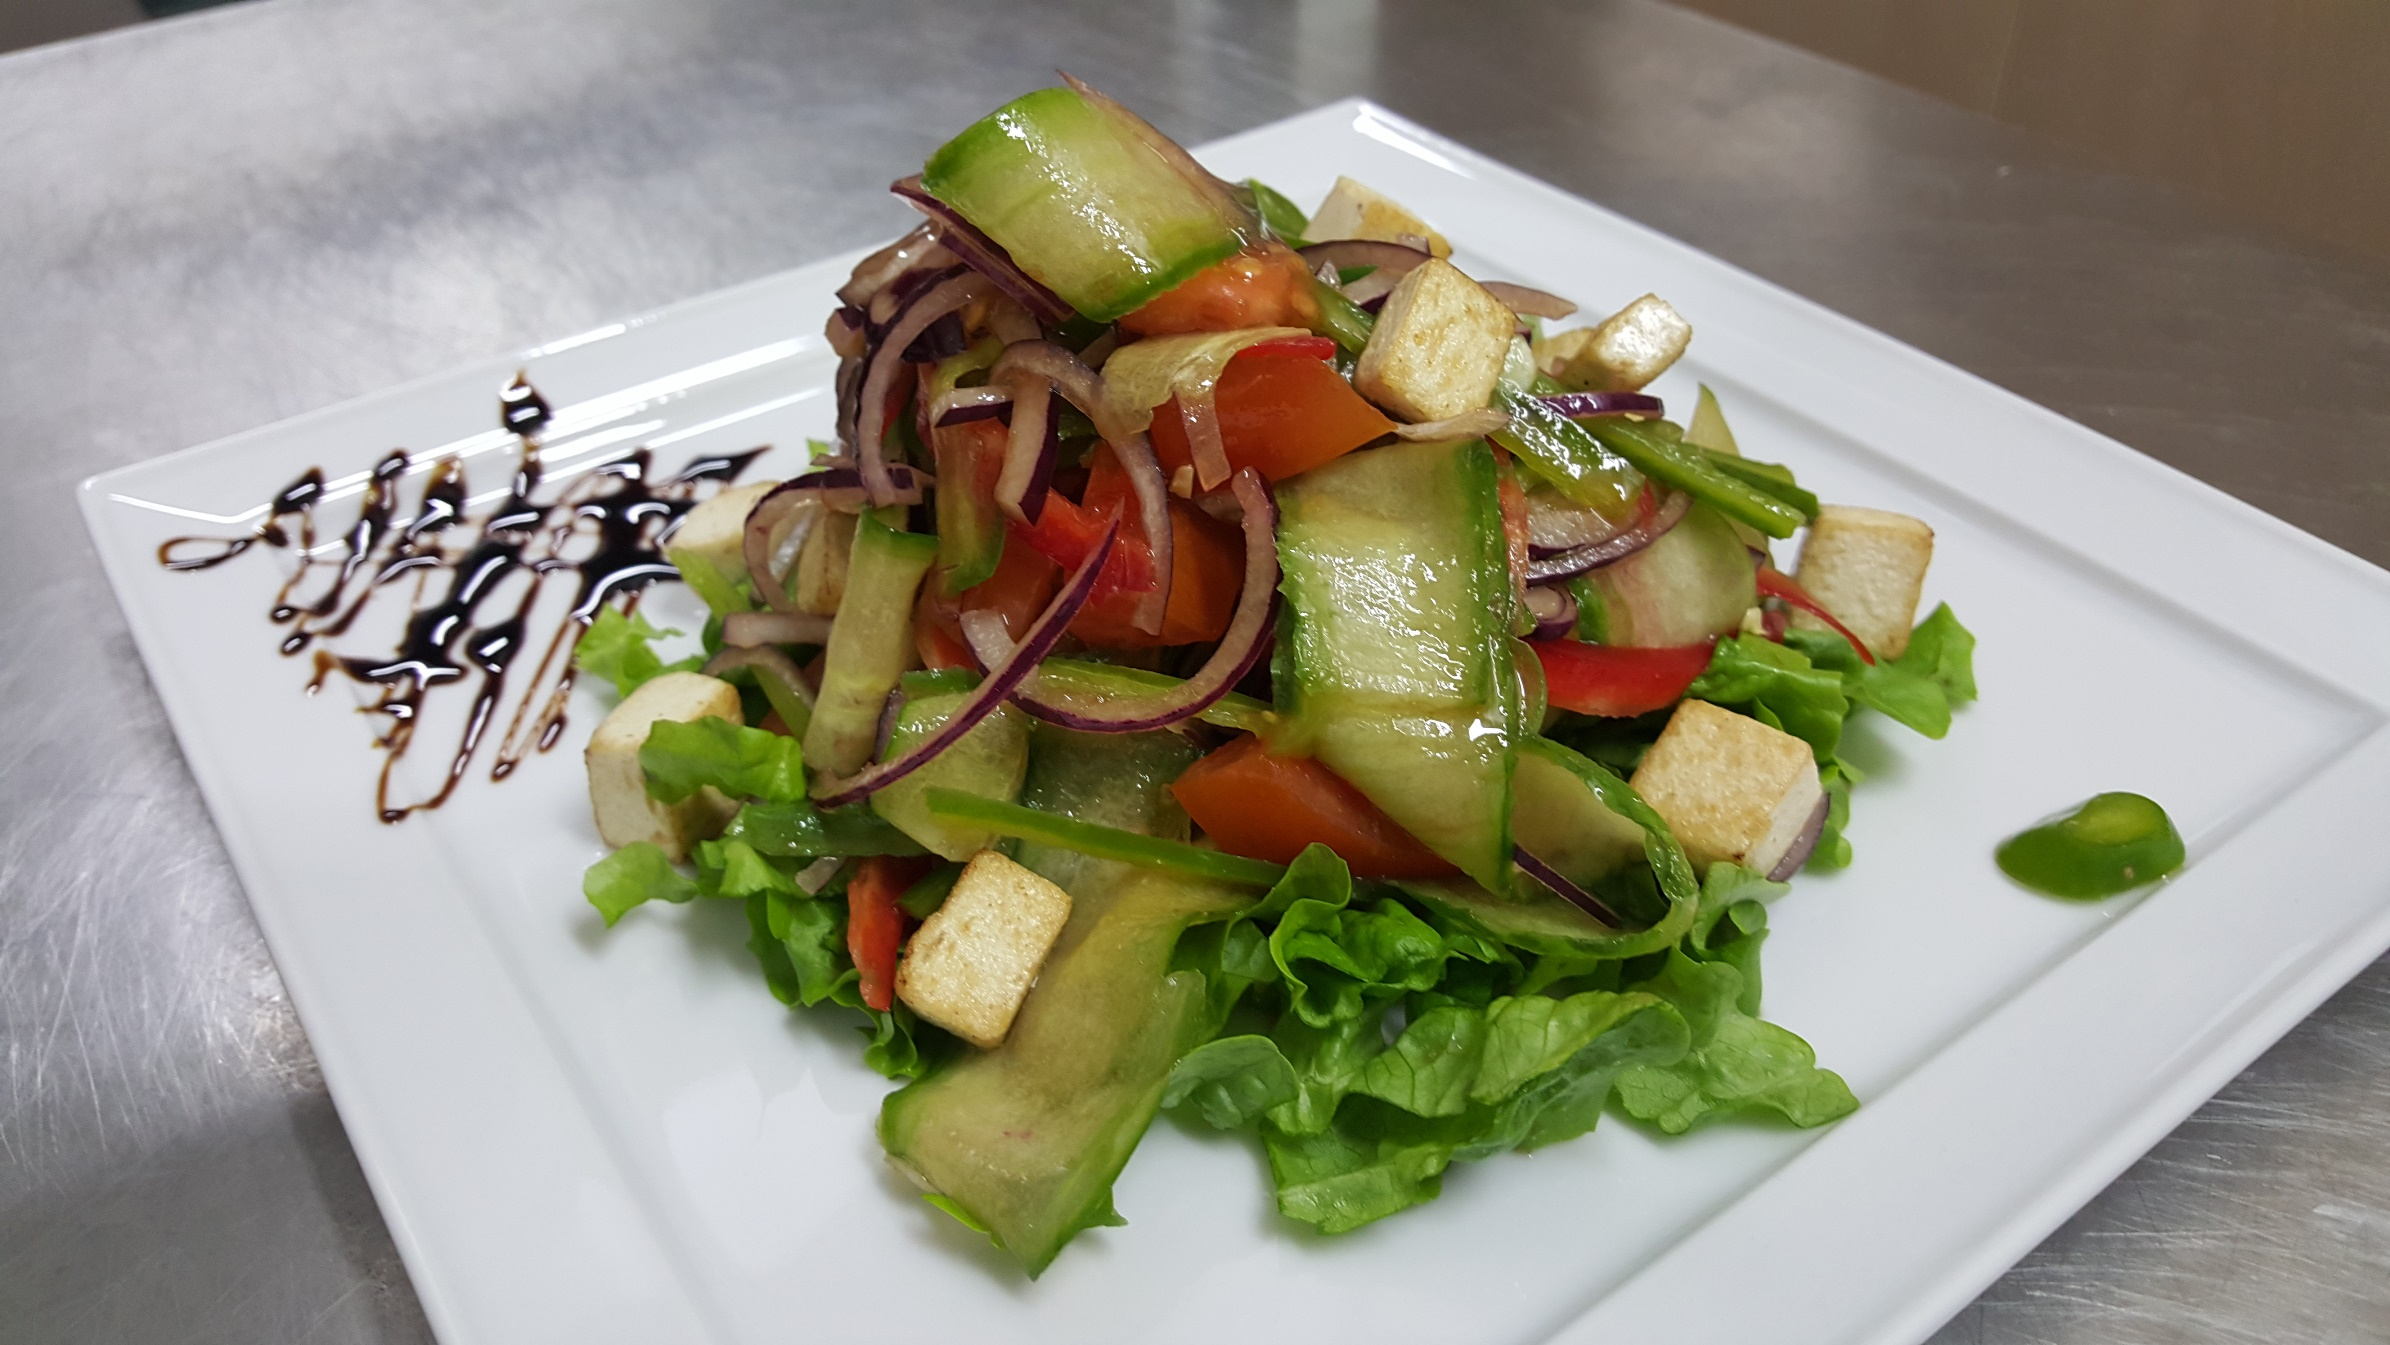 FRESH VEGETABLES WITH TOFU CHEESE - garden vegetables, red onion, tofu cheese, balsamic vinegar dressing, it may be served with firm bulgarian cheese